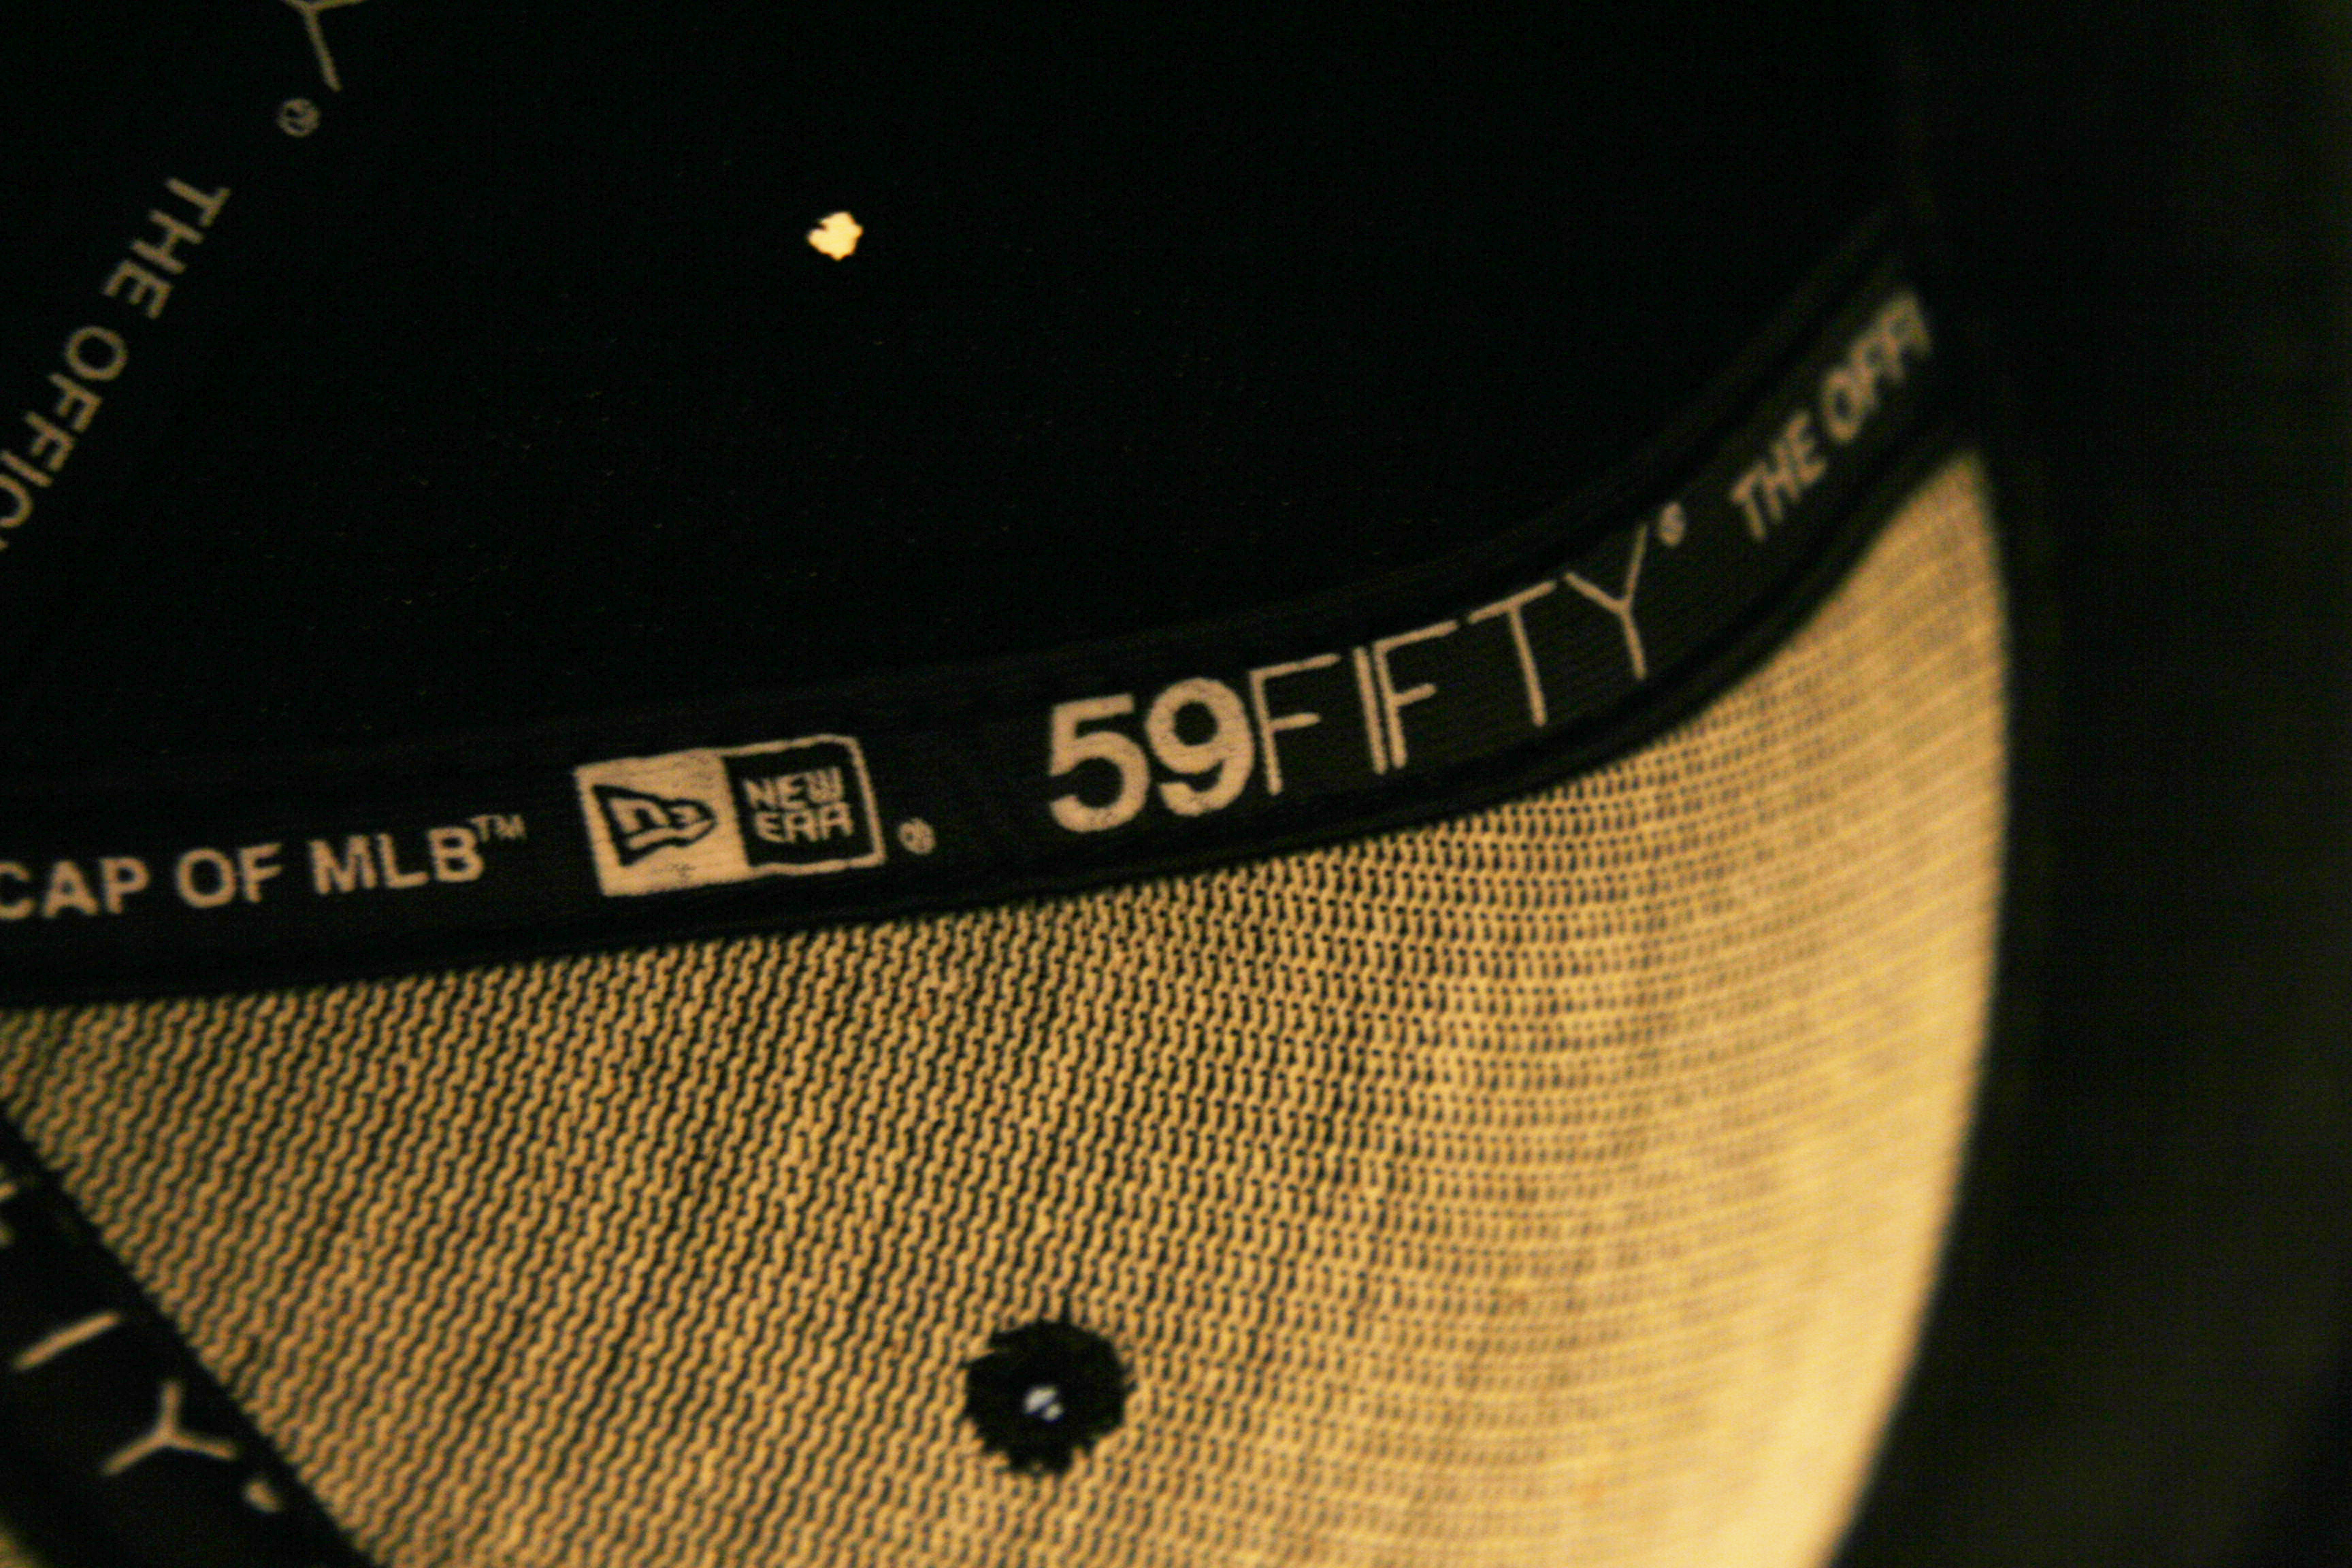 8538f8d0d38 59Fifty - Wikipedia